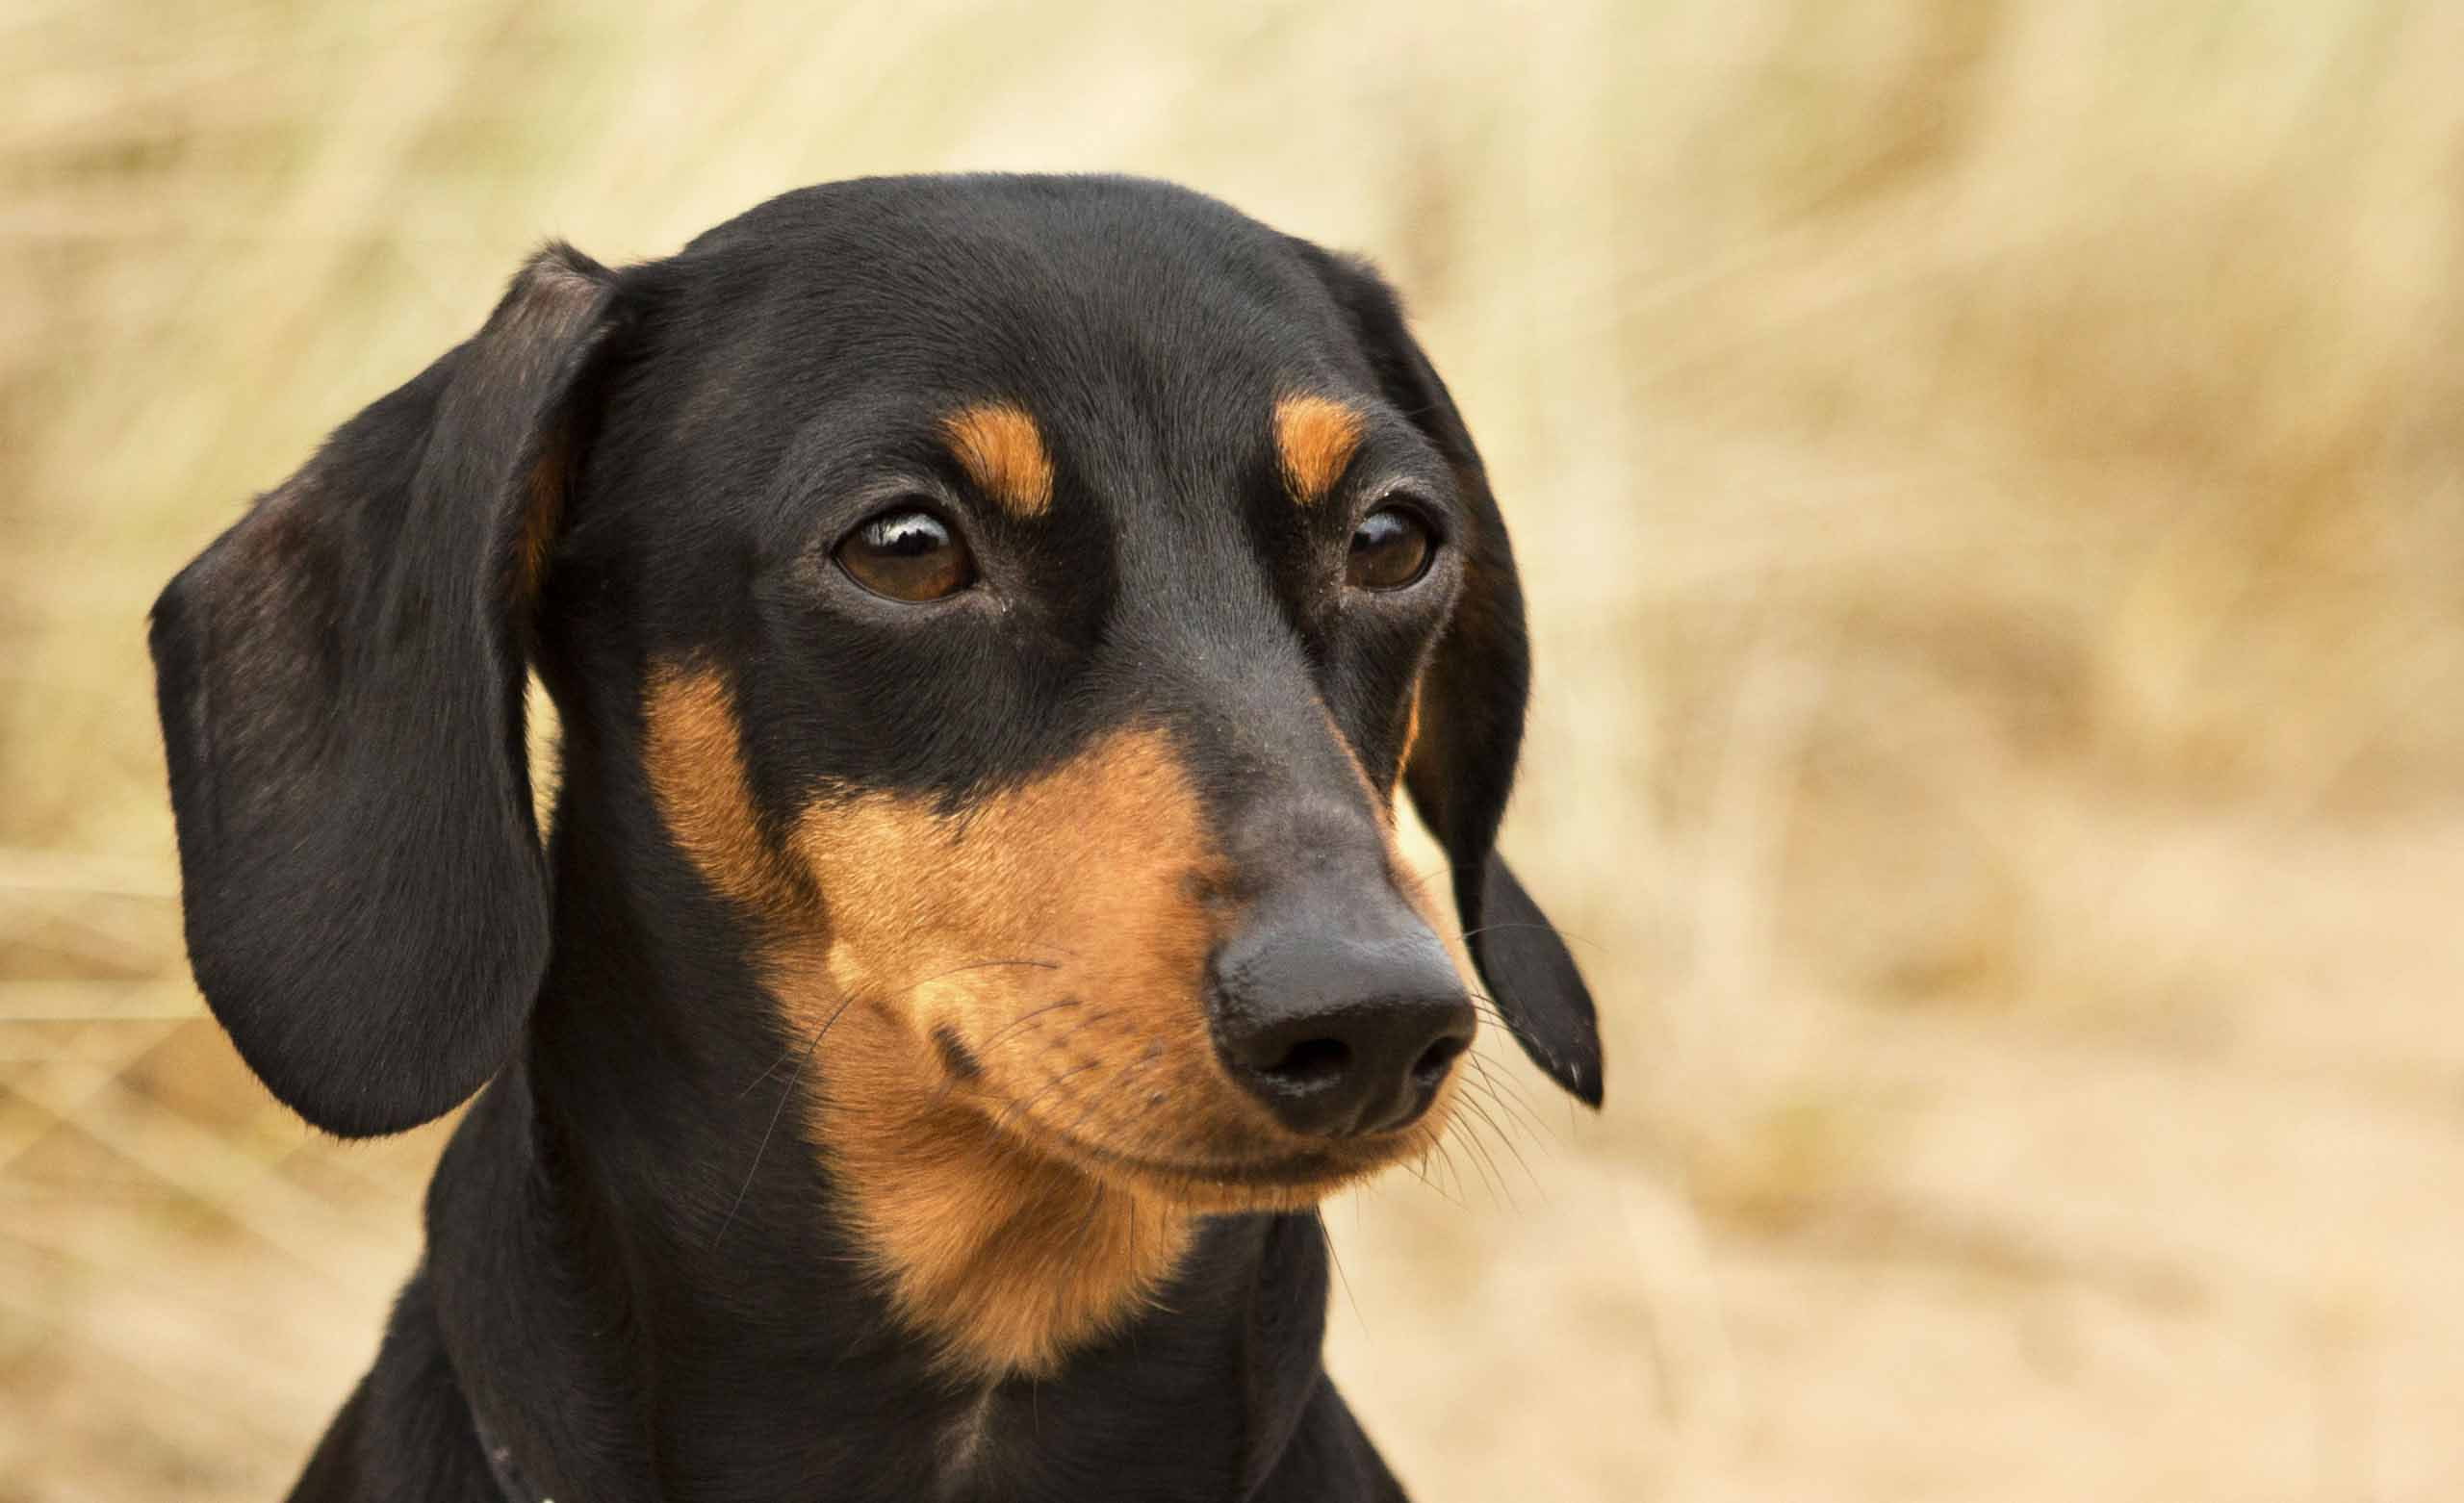 Dachshund dogs face pictures